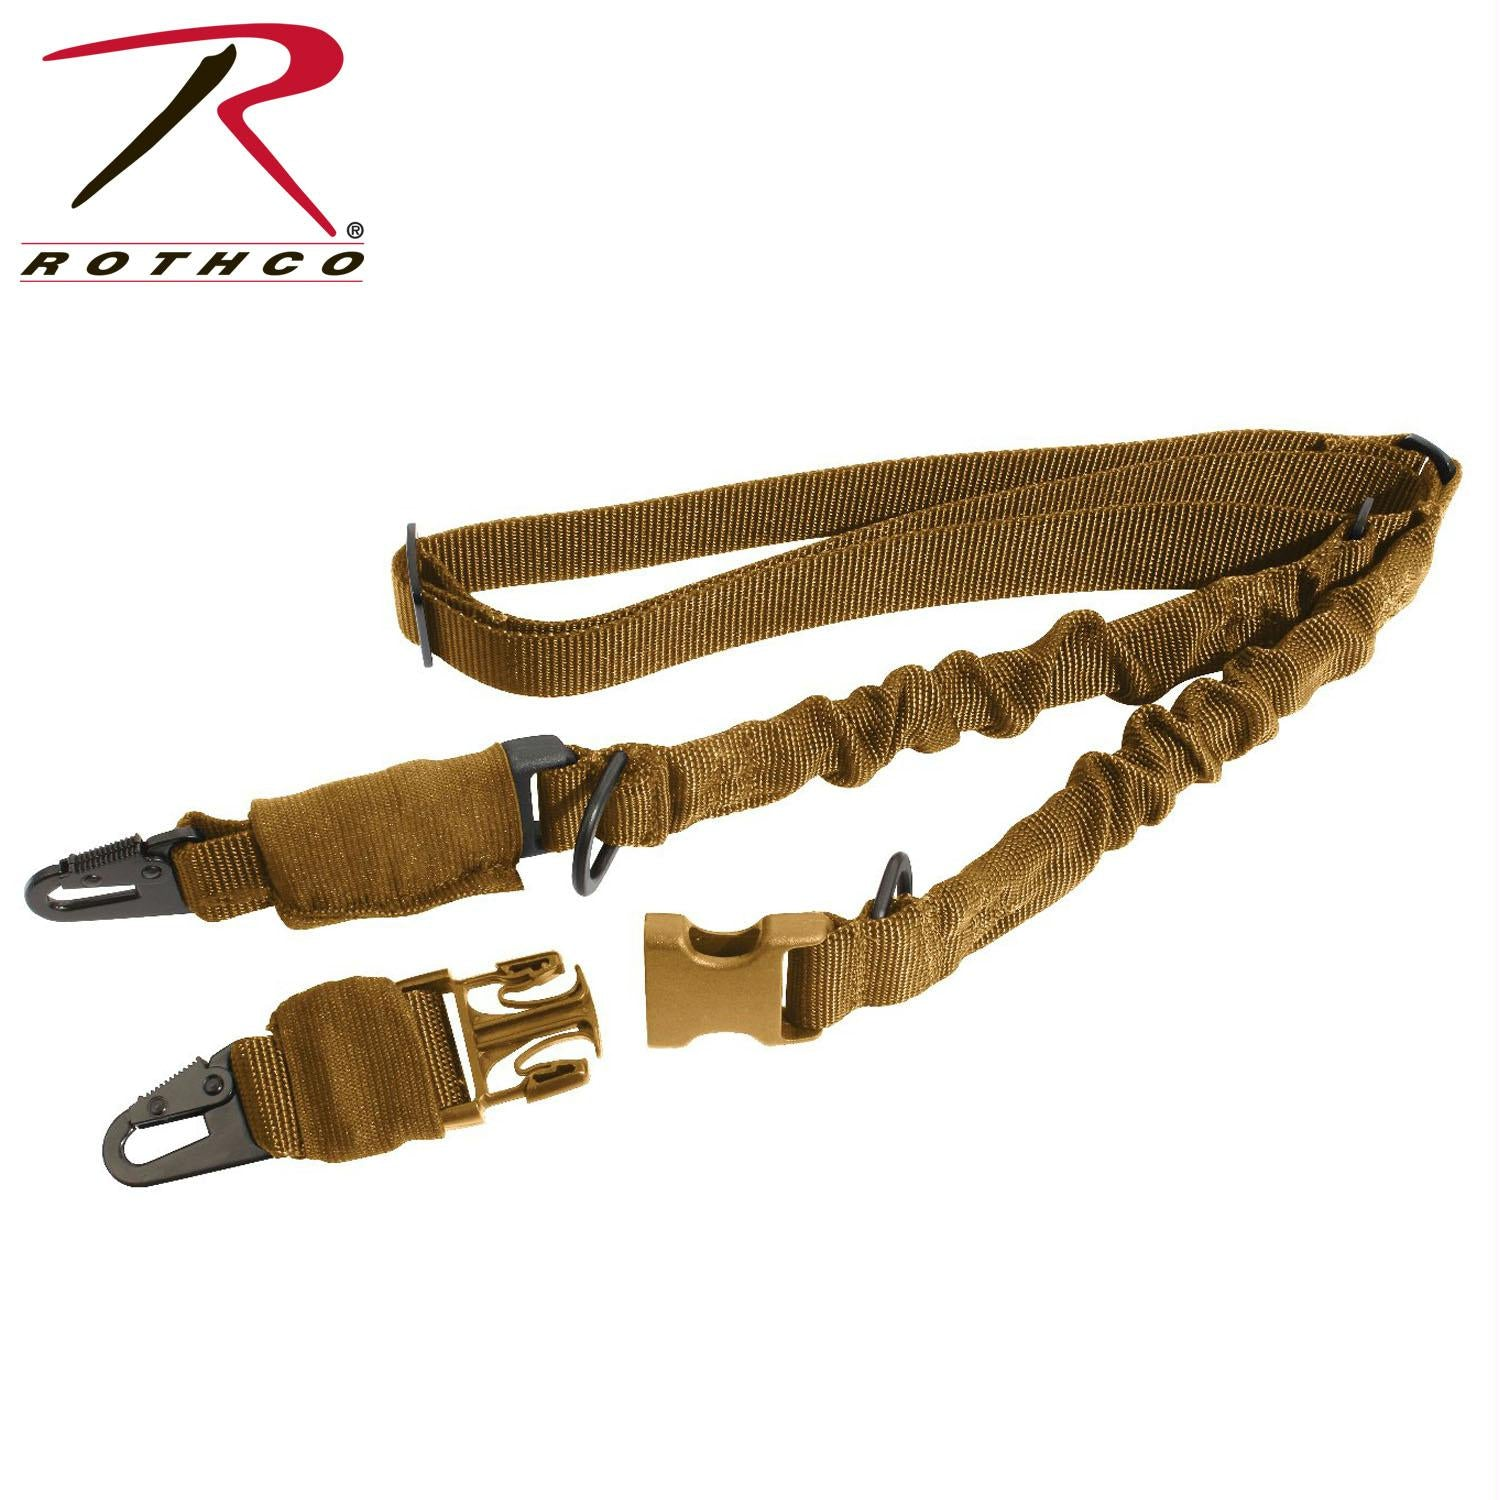 Rothco 2-Point Tactical Sling - Coyote Brown